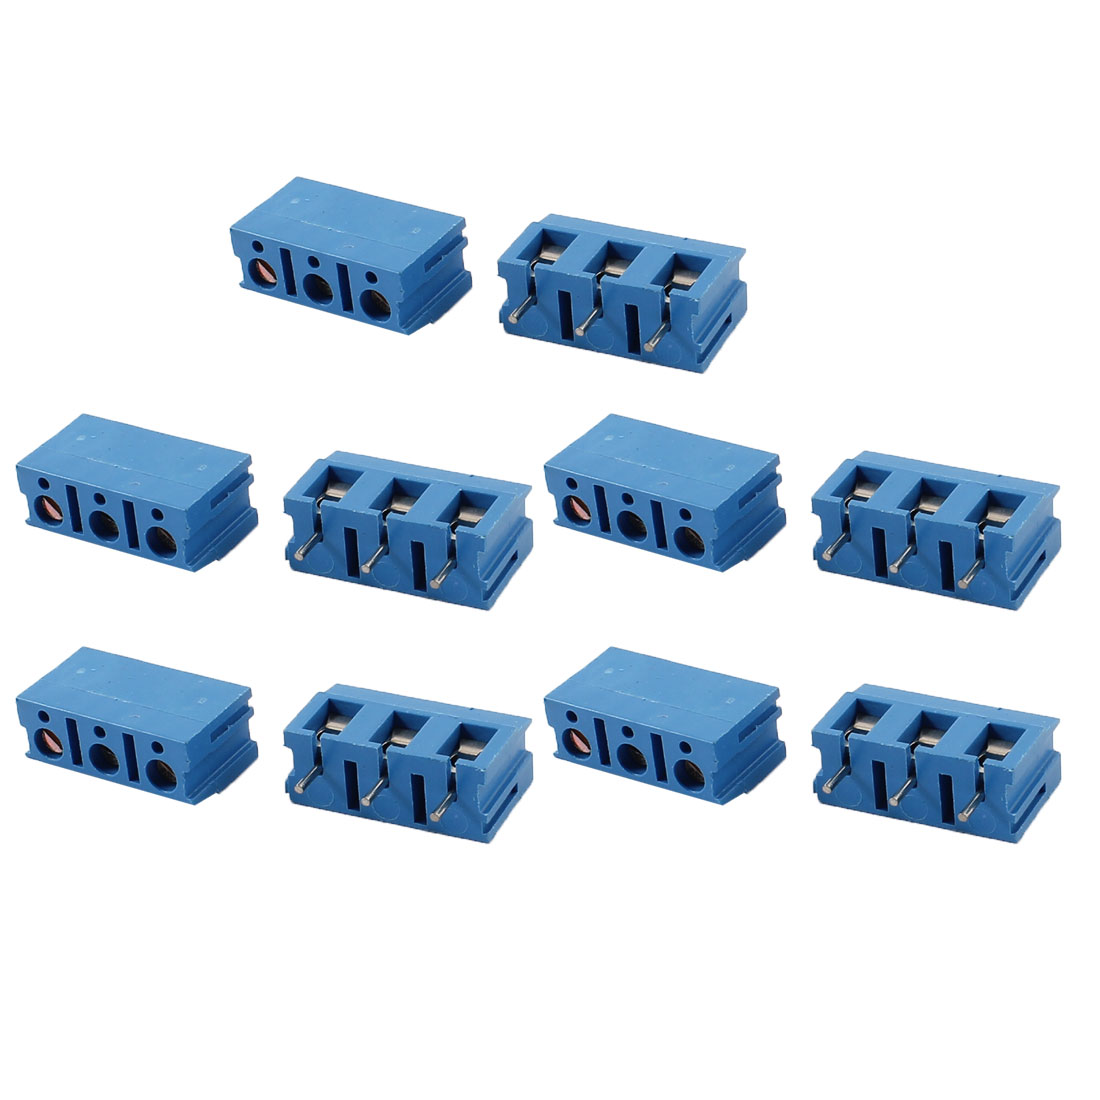 10 Pcs Straight 3 Pins 7.5mm Spacing PCB Board Screw Terminal Blocks